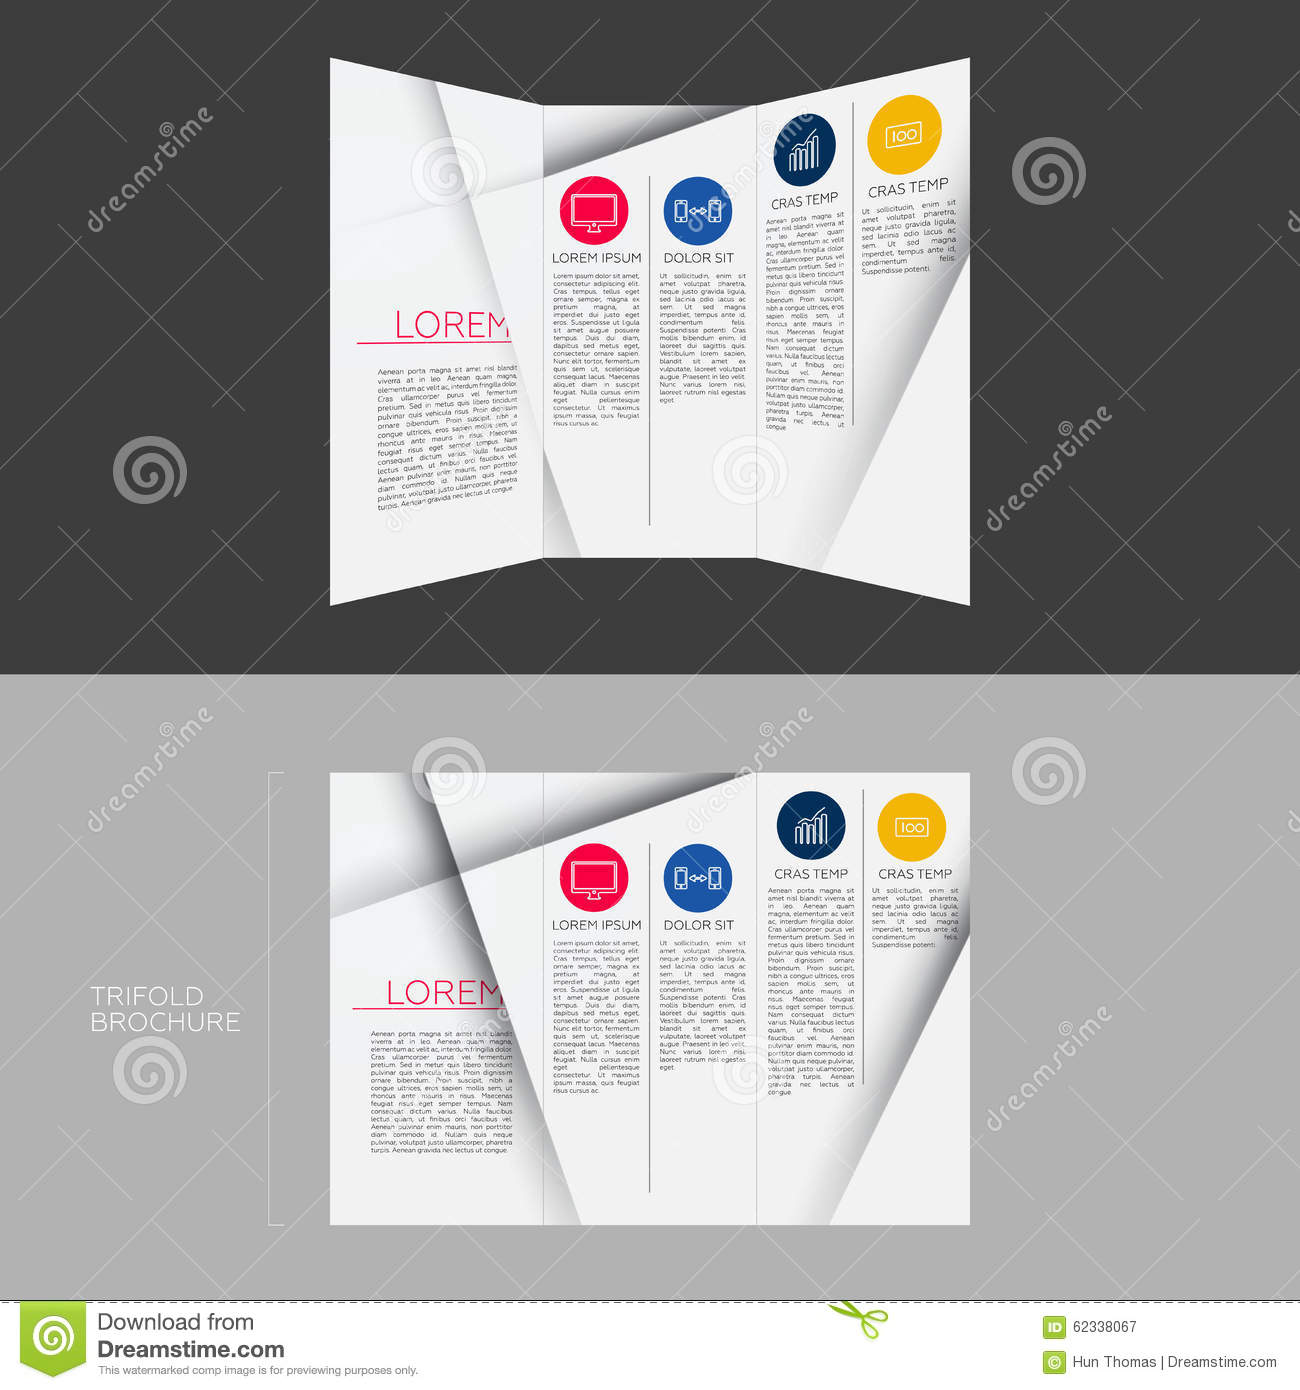 dl brochure template - trifold brochure template design in dl size stock